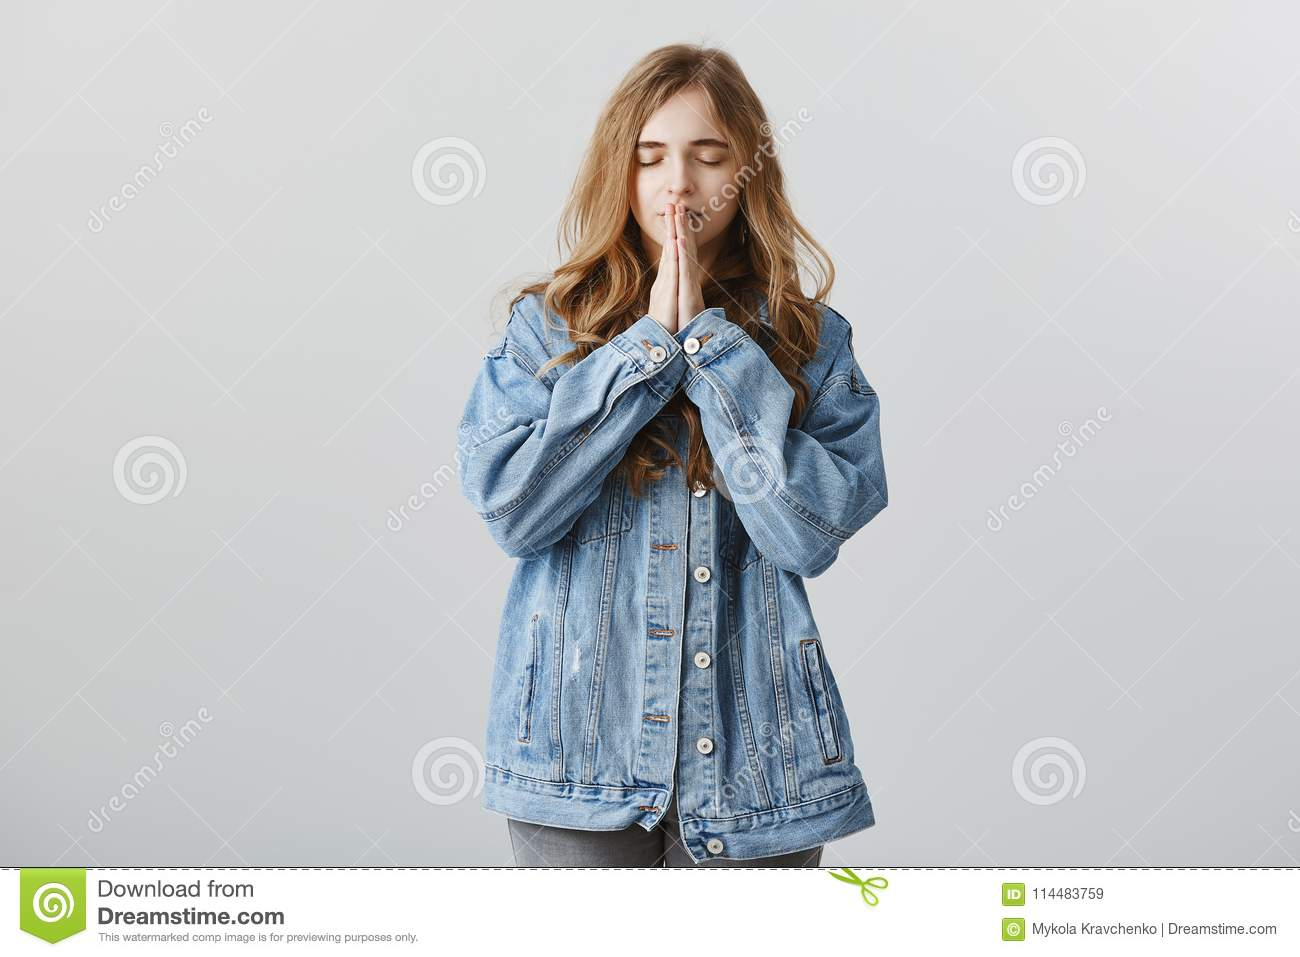 Pulling up feelings to think straight. Indoor shot of confident attractive fashion editor in stylish denim jacket